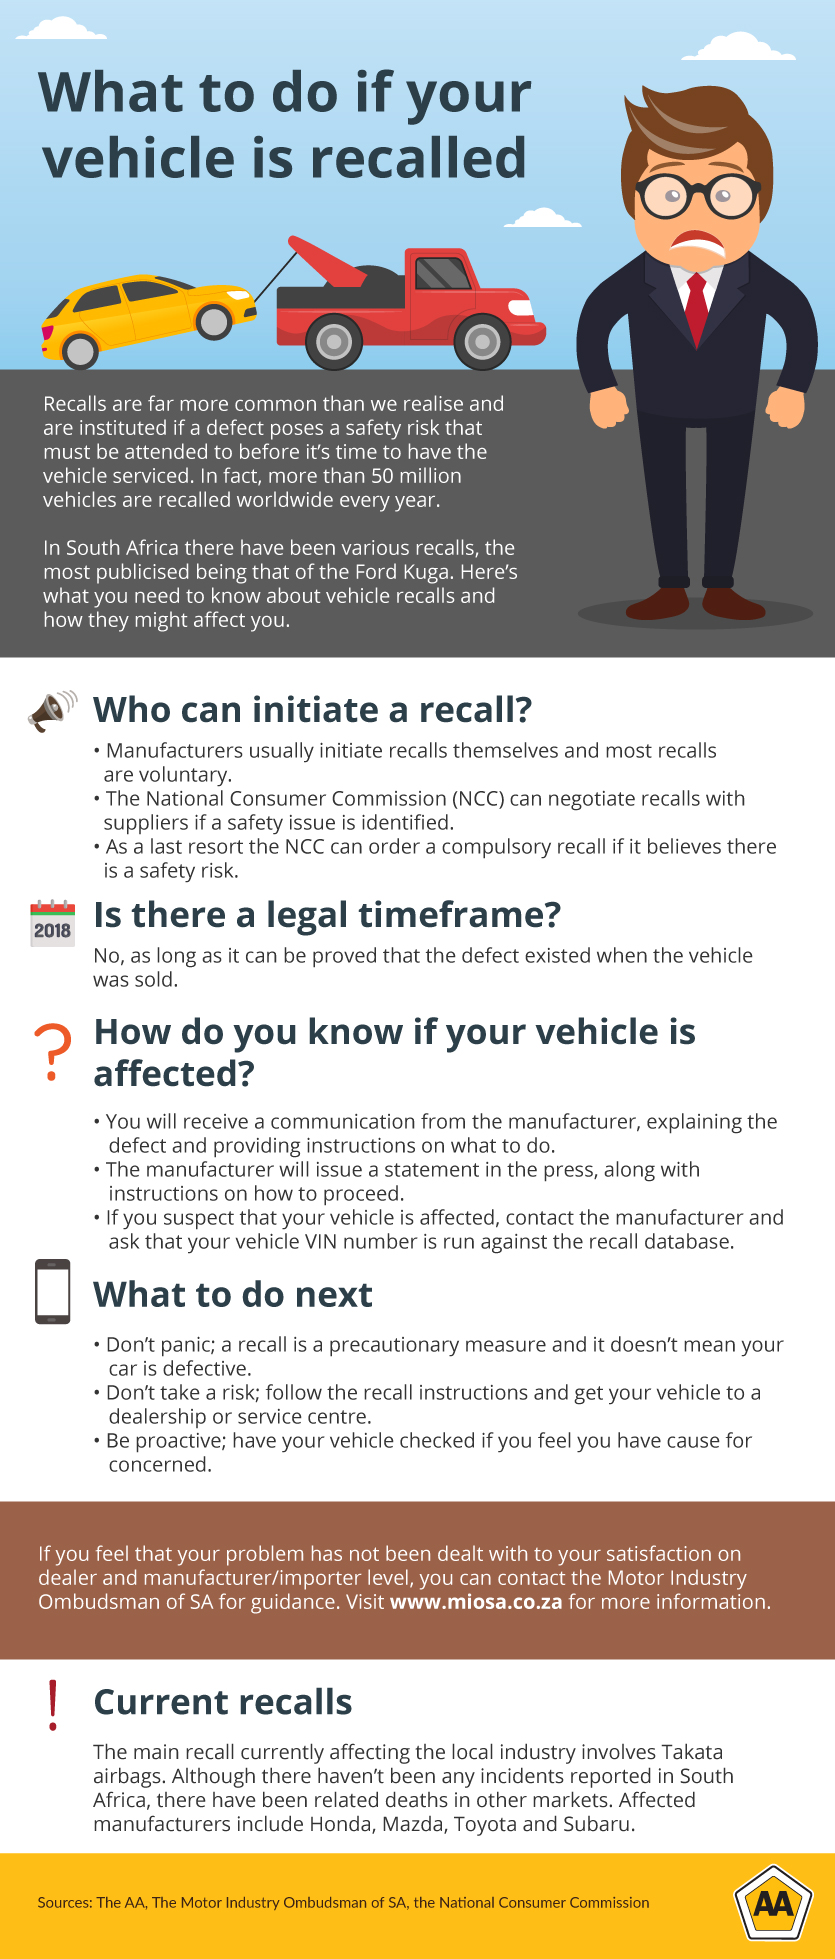 What to do if your vehicle is recalled